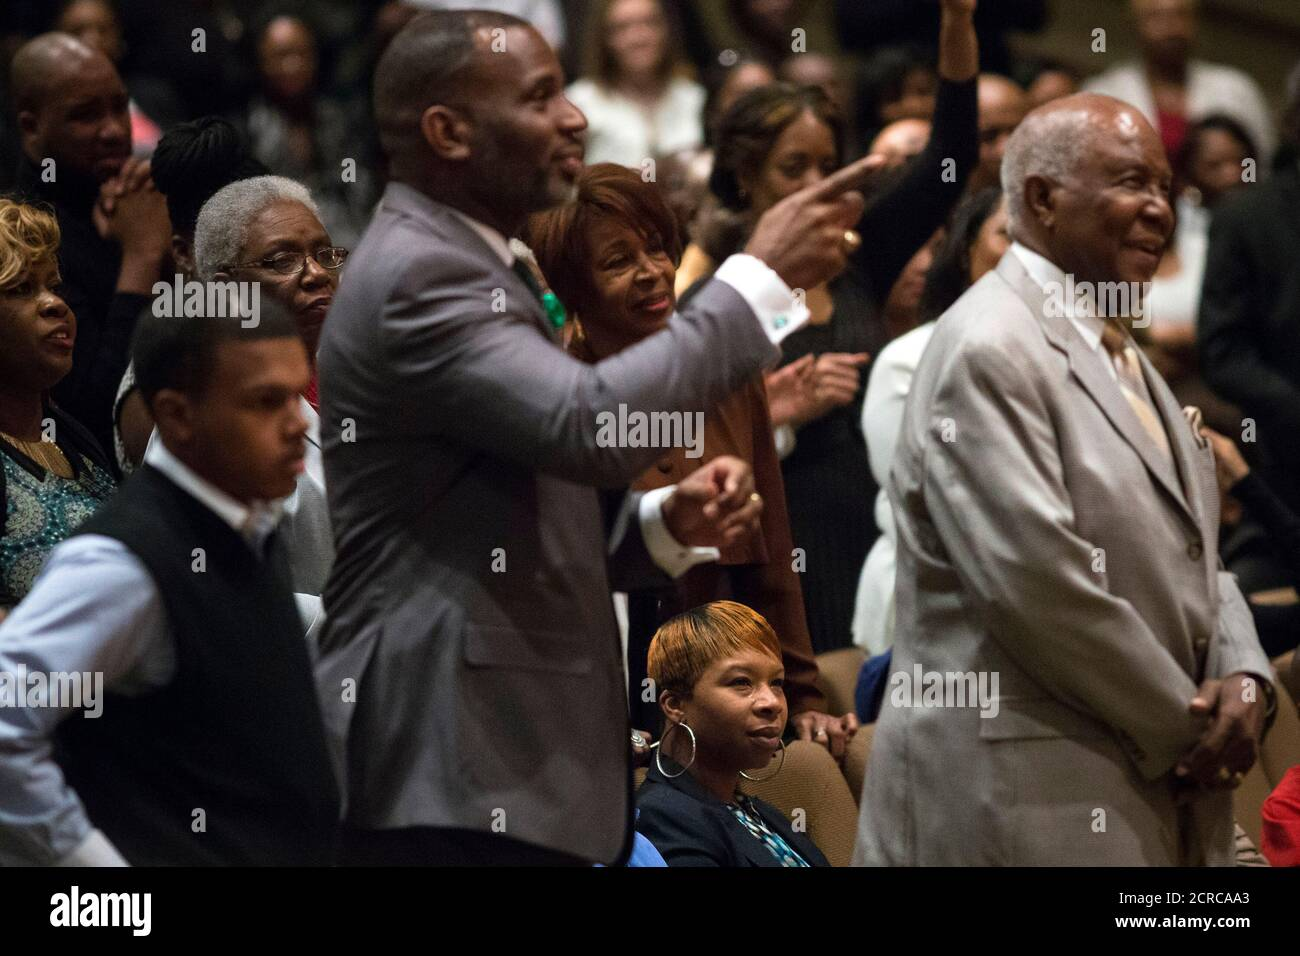 Michael Brown's mother Lesley McSpadden (seated) watches veteran civil rights activist Rev. Al Sharpton speak at the Friendly Temple Missionary Baptist Church in St. Louis, Missouri November 30, 2014. Sharpton preached on Sunday to a congregation of some 2,500 worshippers at the St. Louis church where Michael Brown's funeral was held in August. The dead teen's parents were among the congregation.  REUTERS/Adrees Latif  (UNITED STATES - Tags: CRIME LAW CIVIL UNREST POLITICS RELIGION) Stock Photo